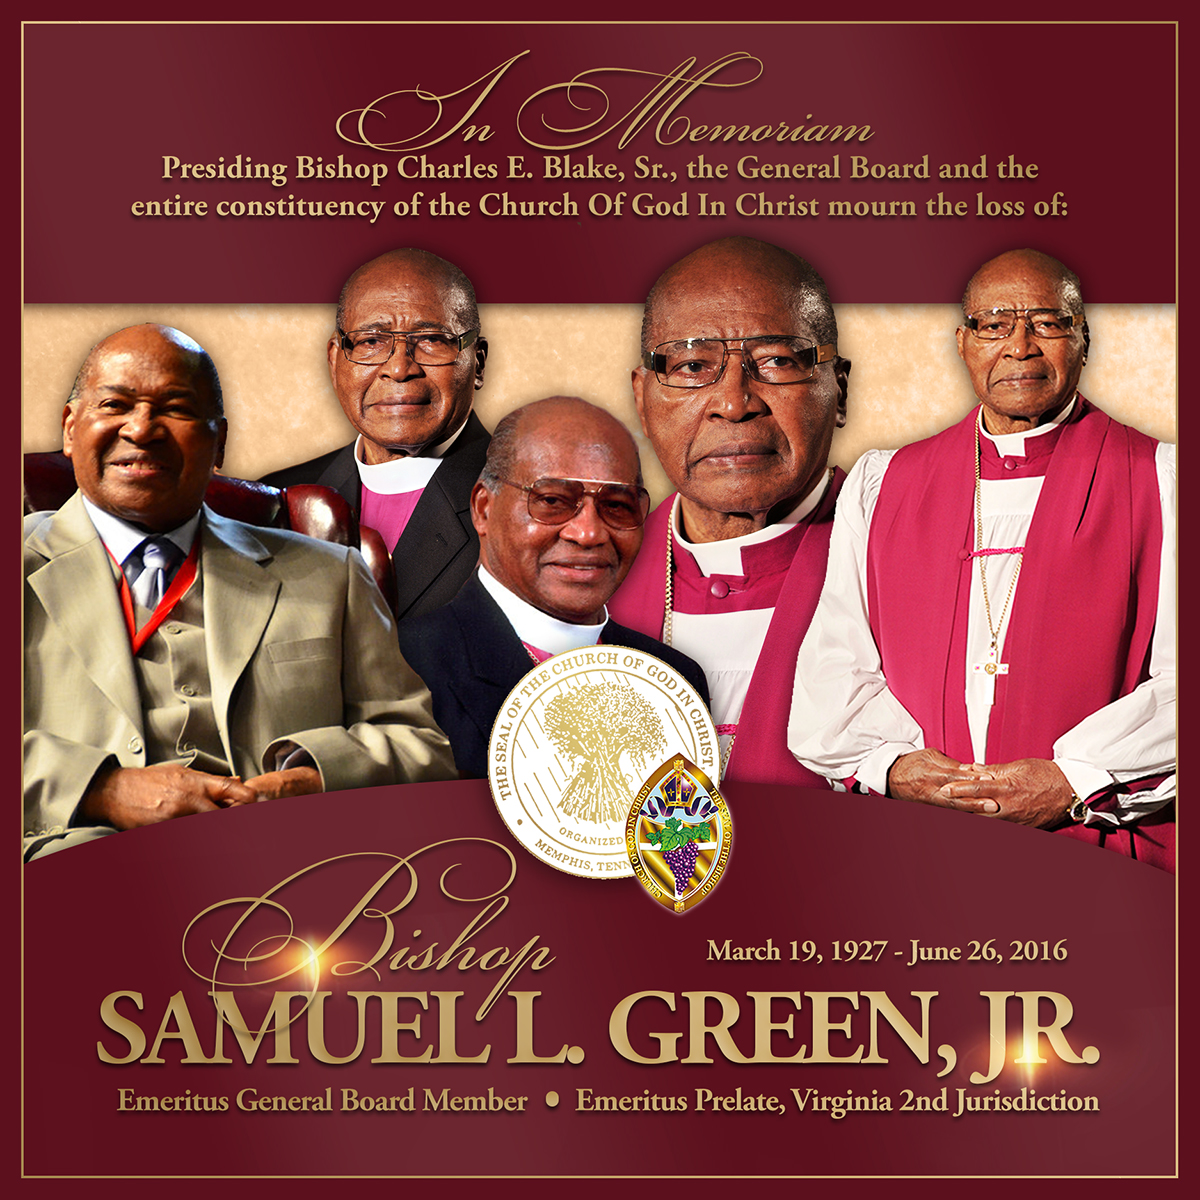 COGIC Mourns the Loss of General Board Member